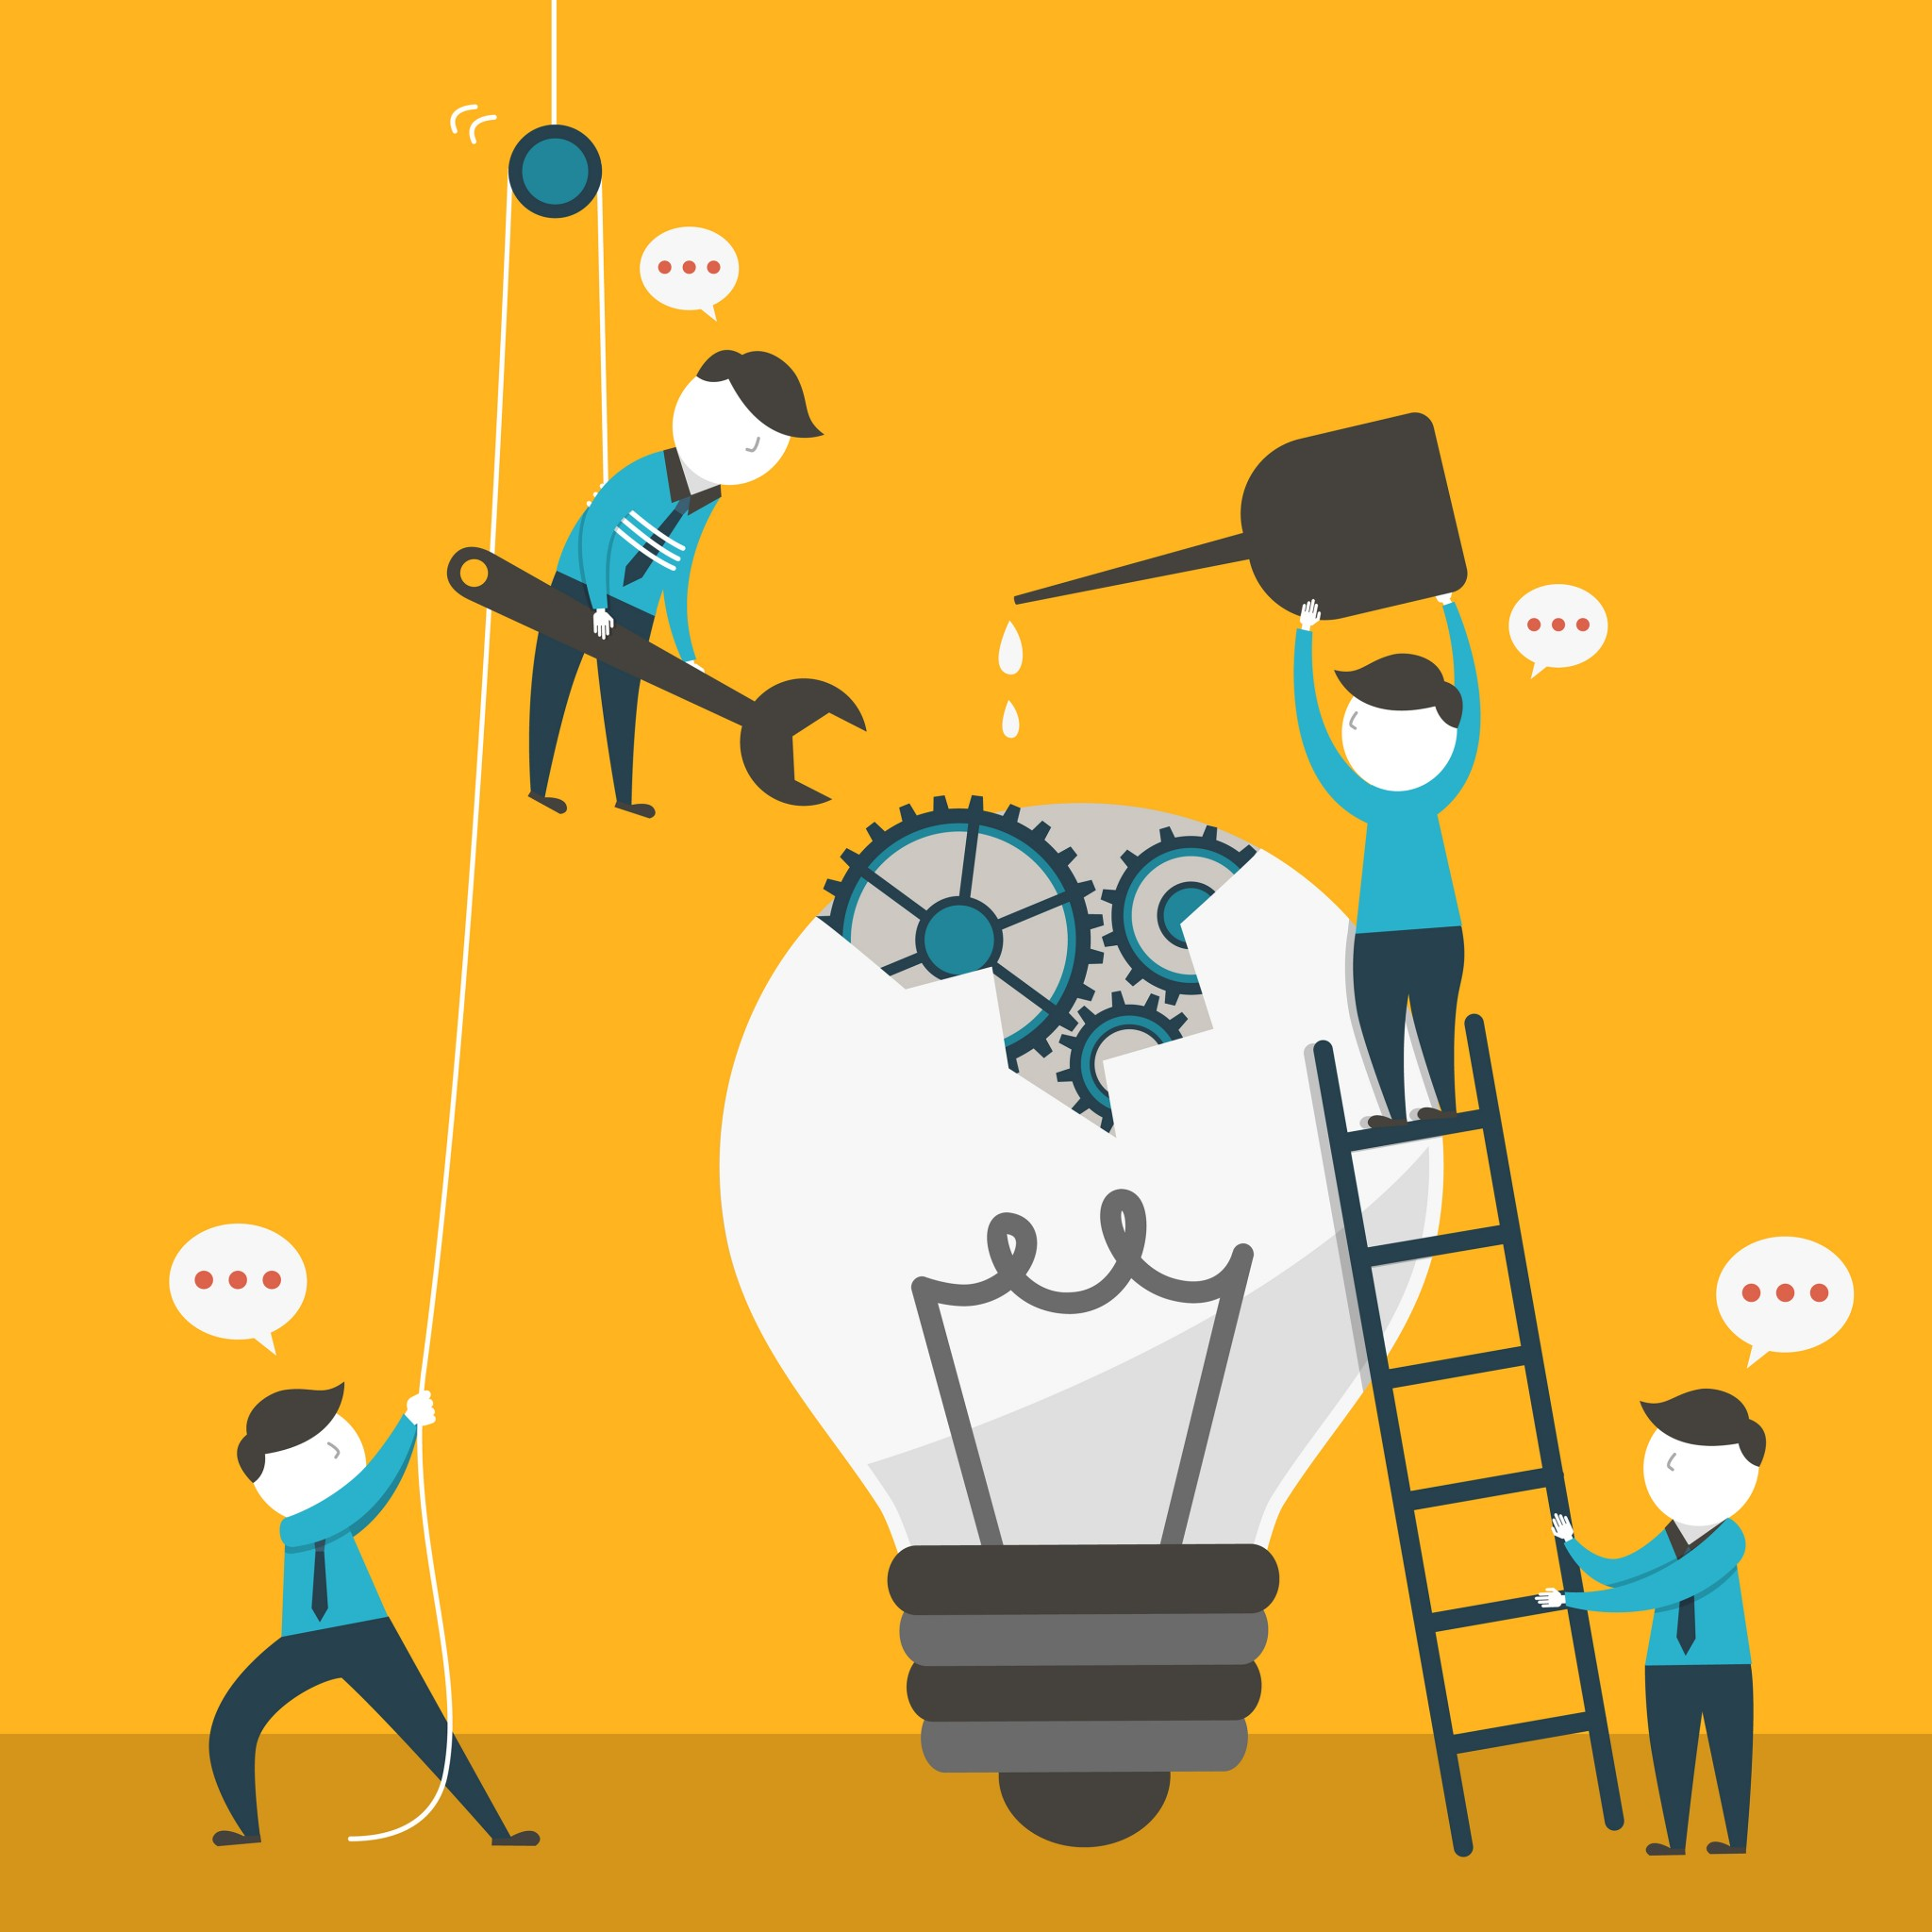 Illustration of 4 men working together to build a lamp - represents that Having an experienced team can be a great help on you joint venture's agreement success